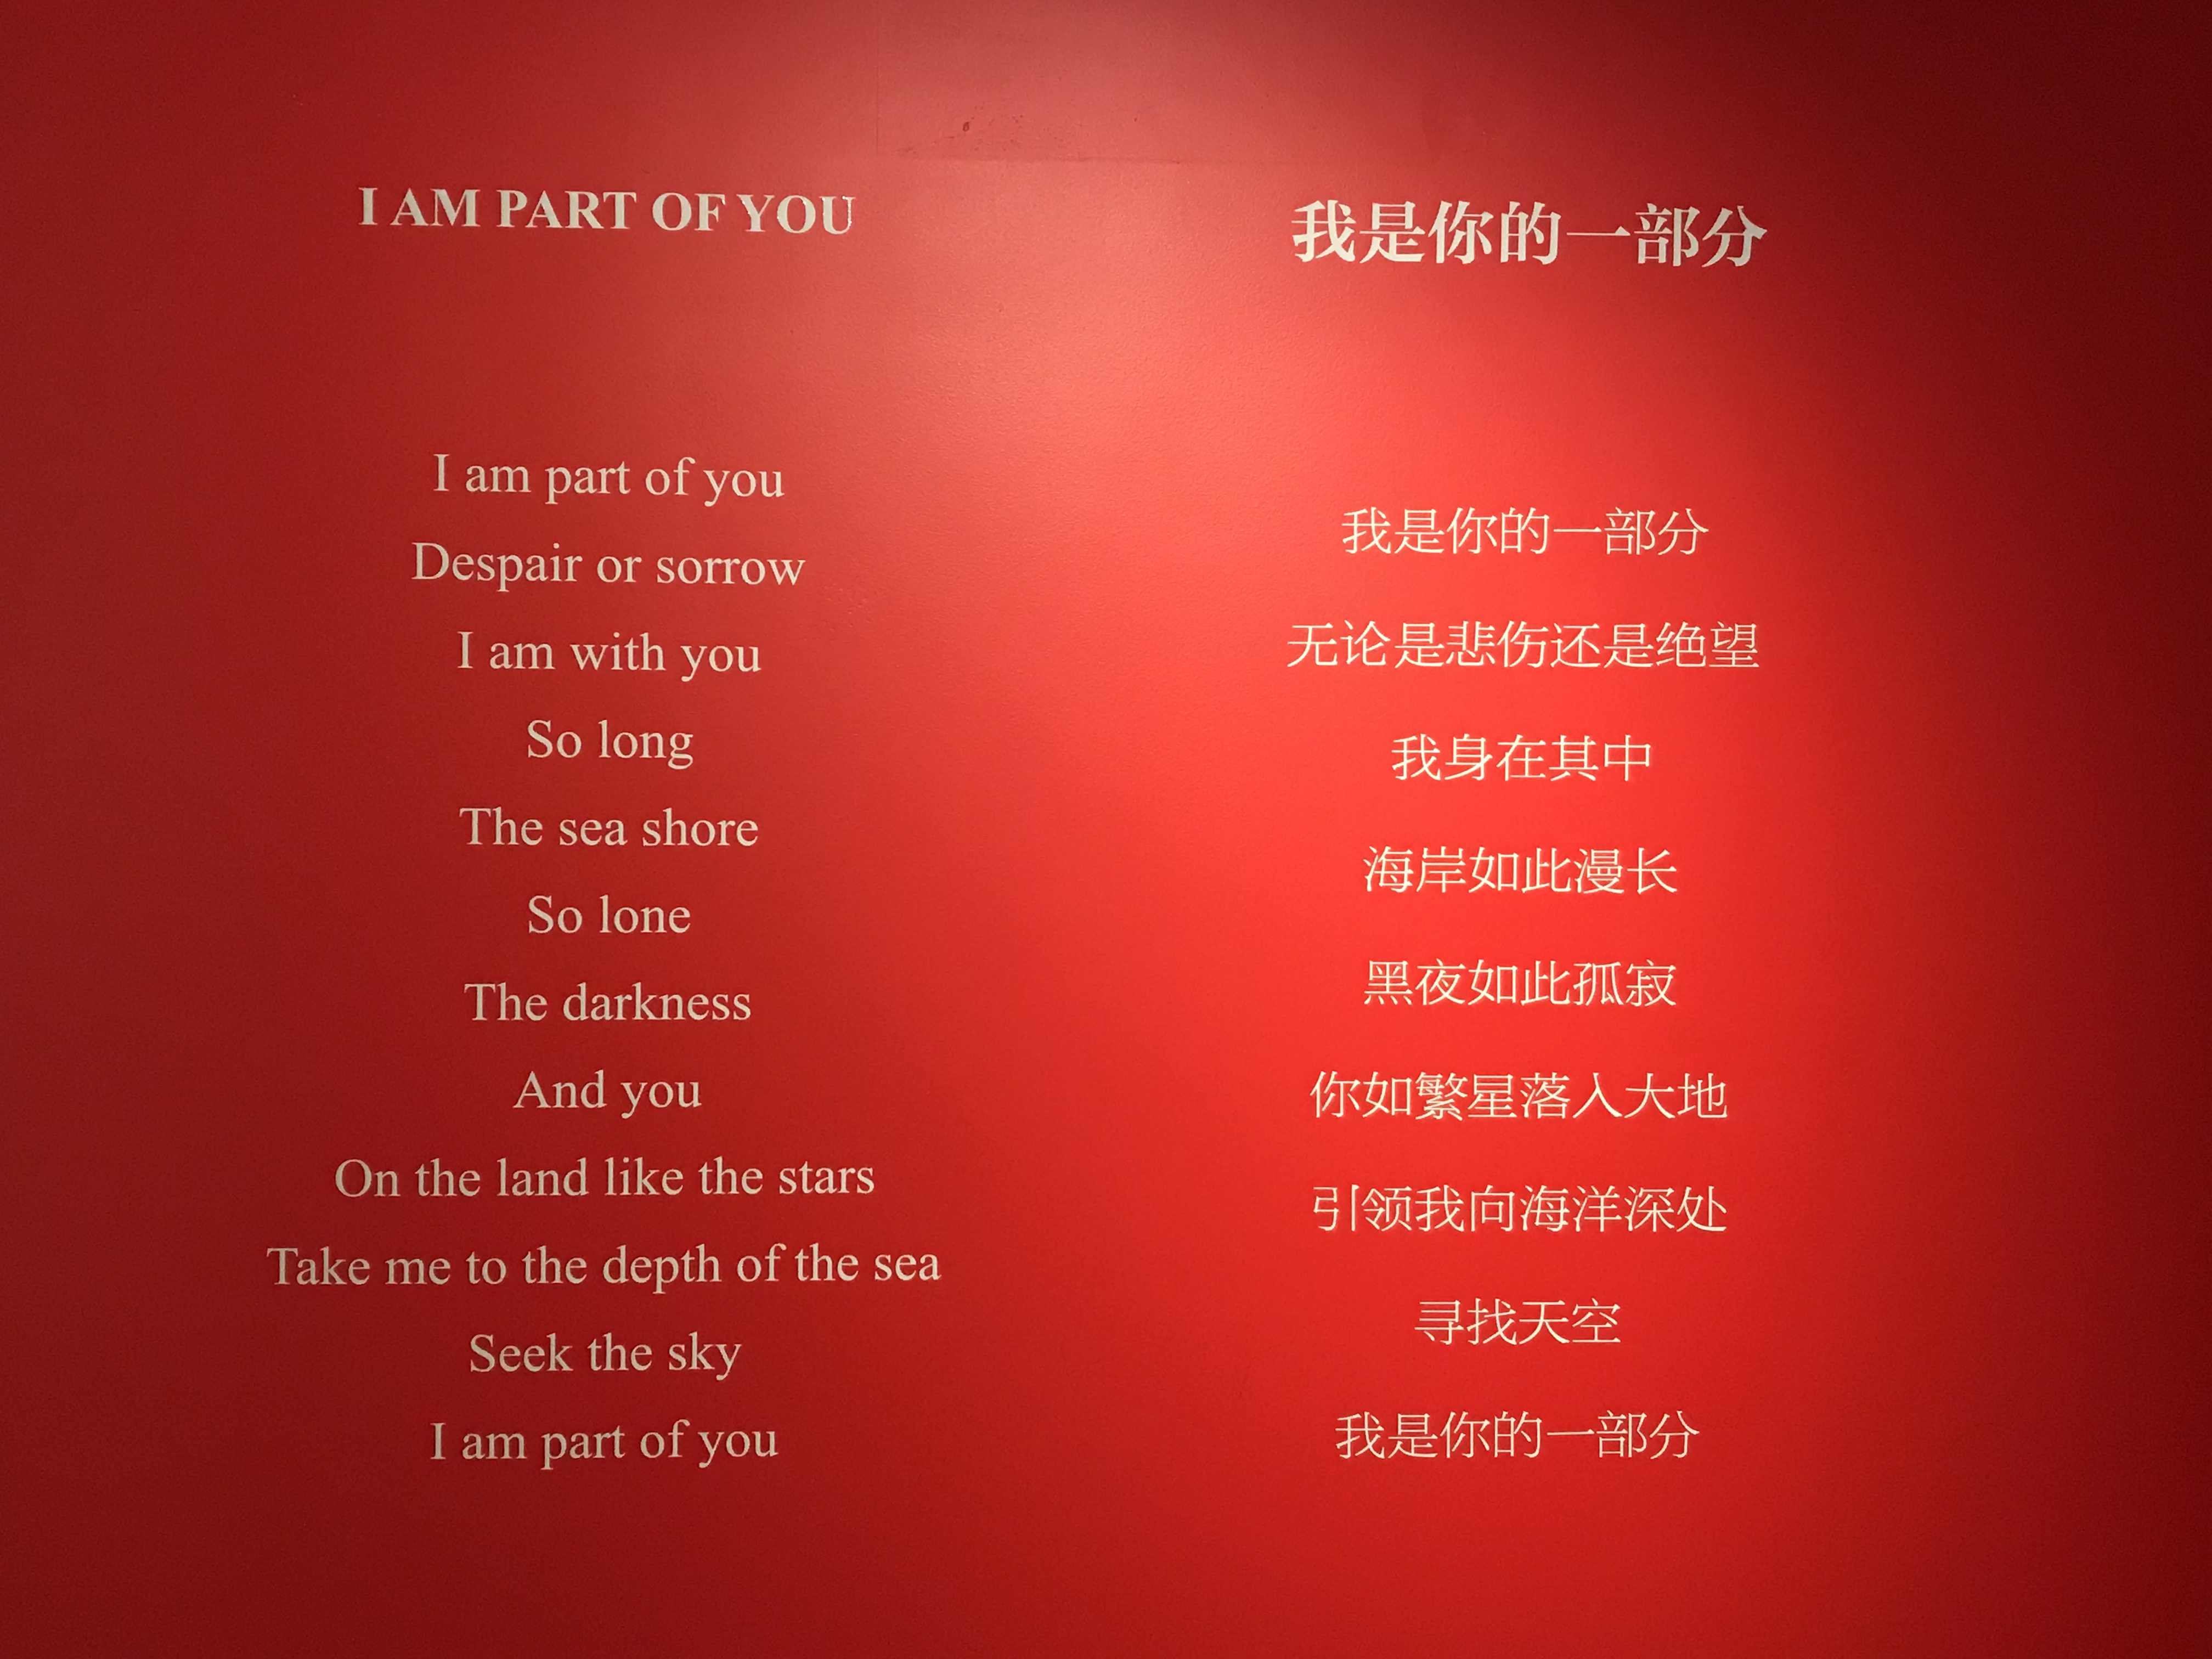 """the poetry """"I AM PART OF YOU"""""""